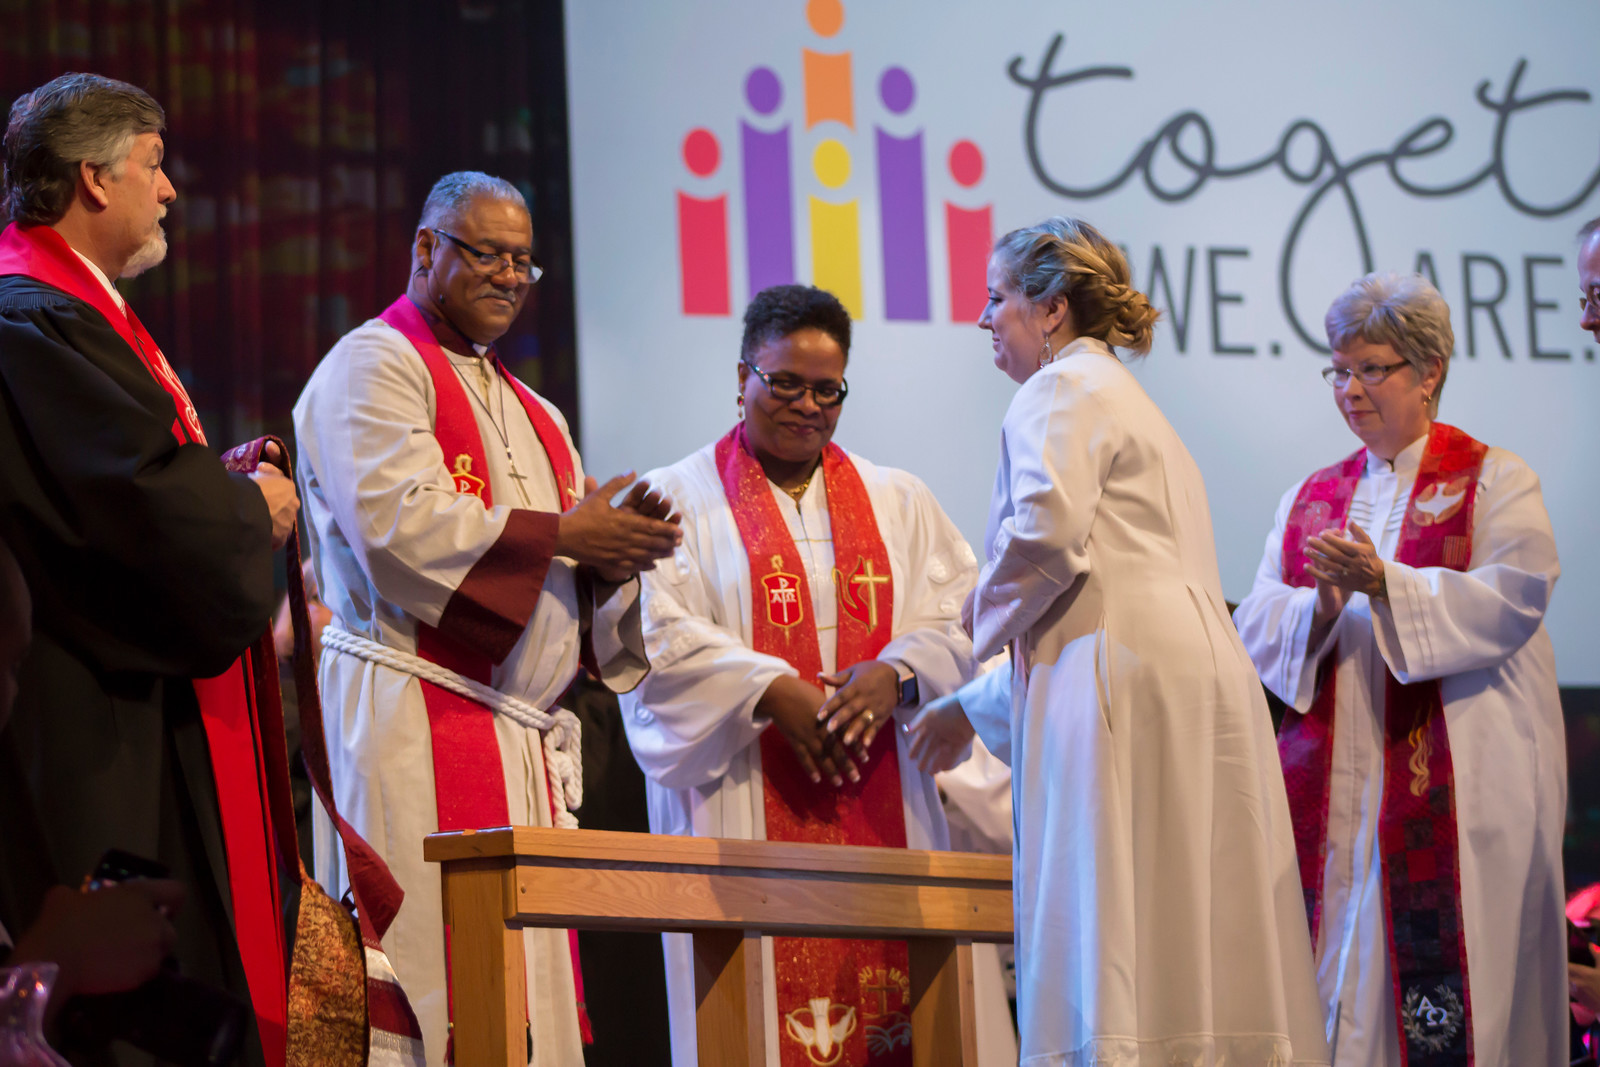 Mary Rebekah Ward Dicken at The Commissioning and Ordination Service at the 2017 INUMC Annual Conference in Indianapolis.